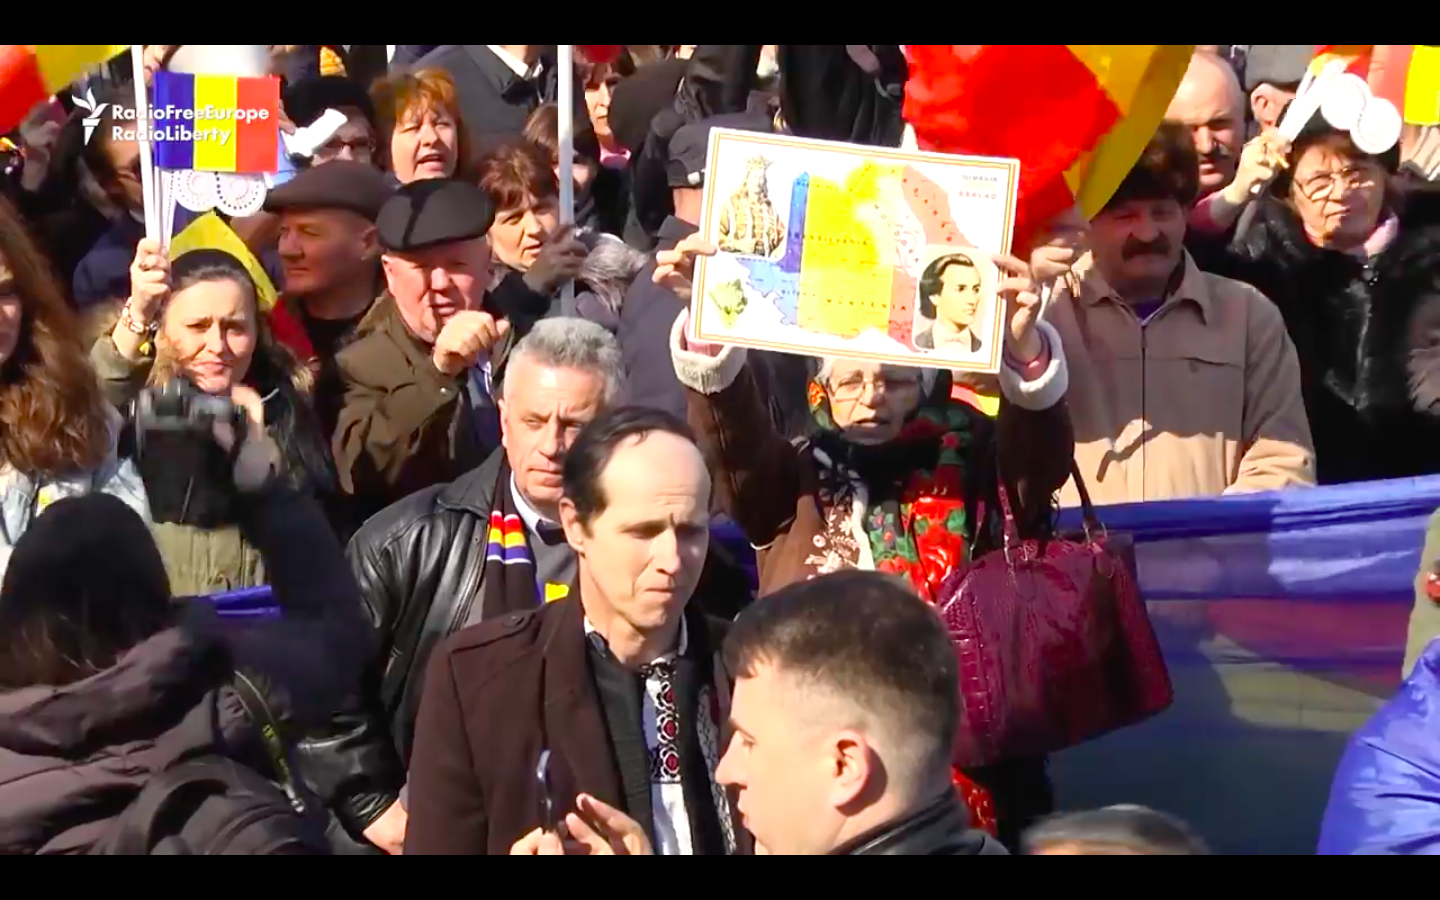 Video: Moldovans Demonstrate For Reunification With Romania